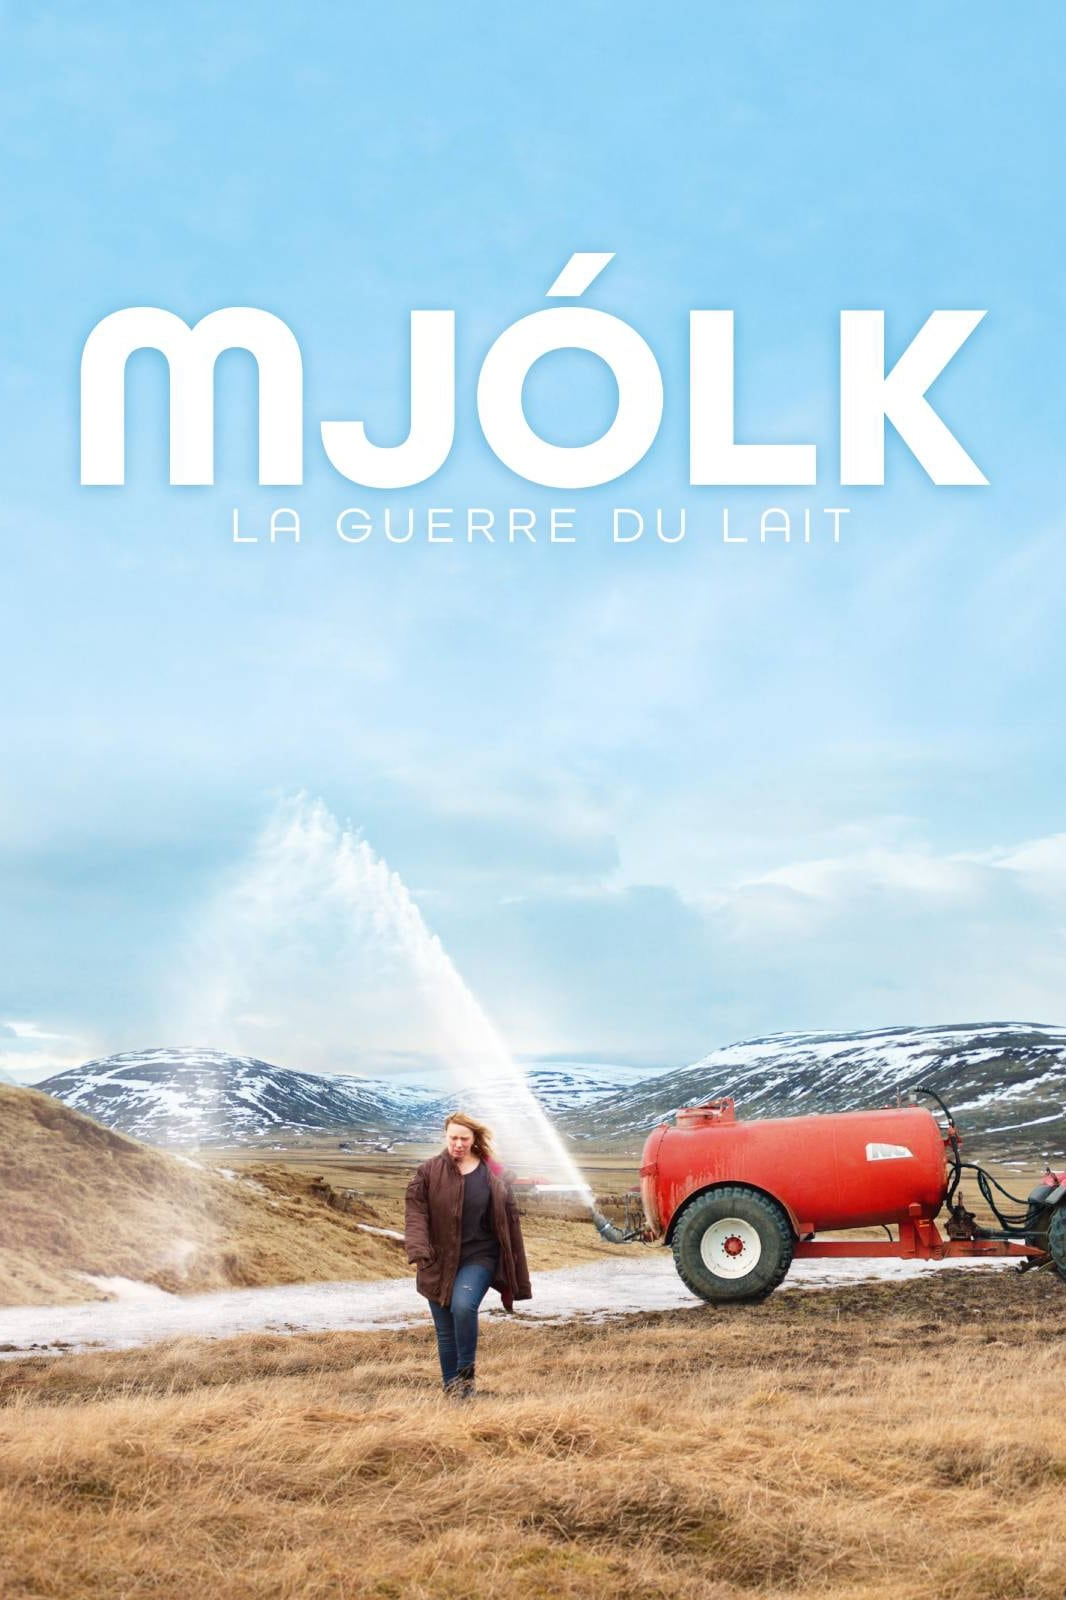 Mjolk - La guerre du lait streaming sur zone telechargement